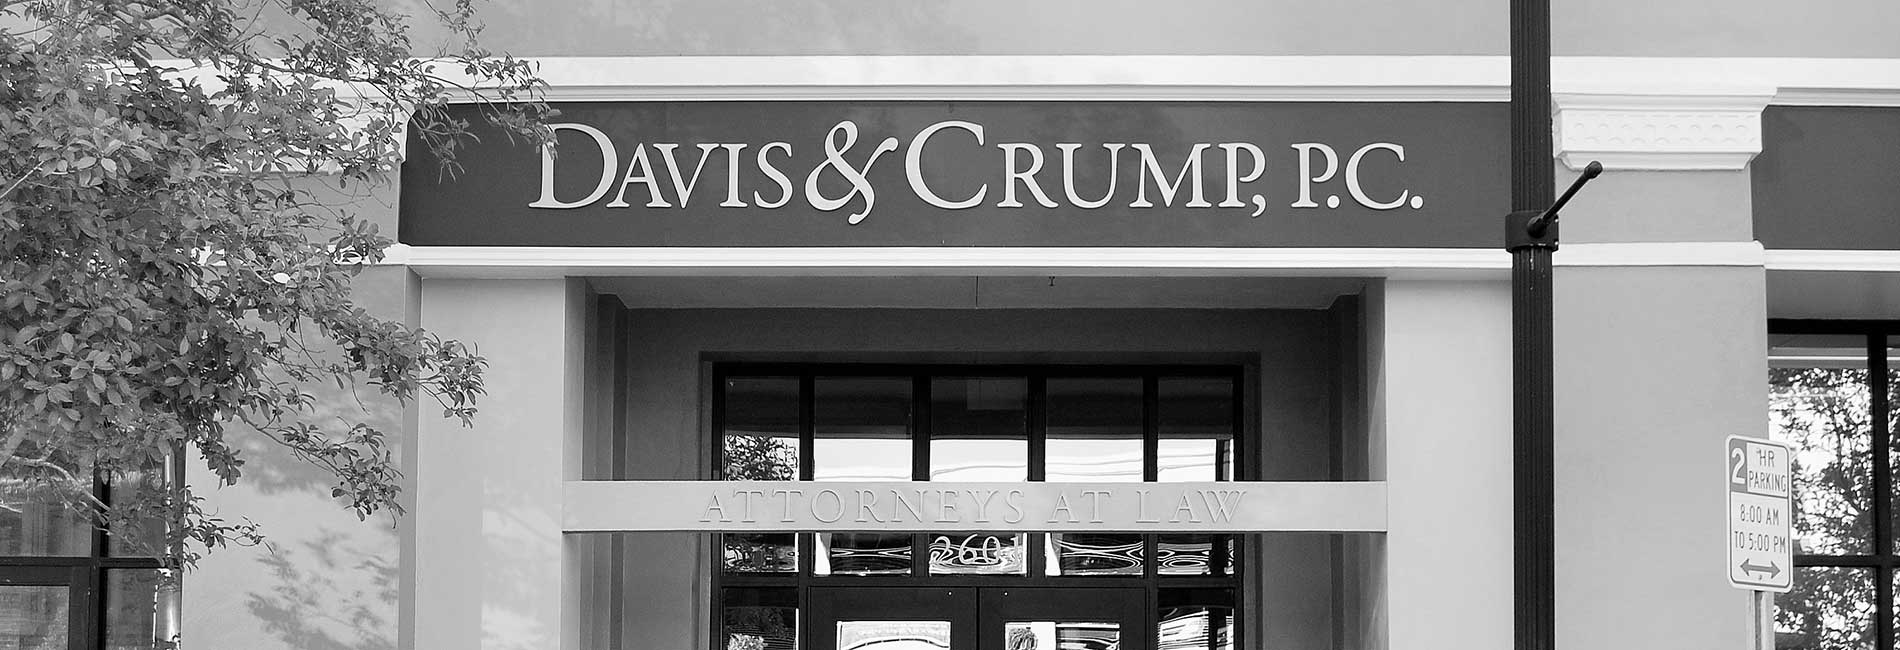 About Our Firm | Davis & Crump Attorneys At Law